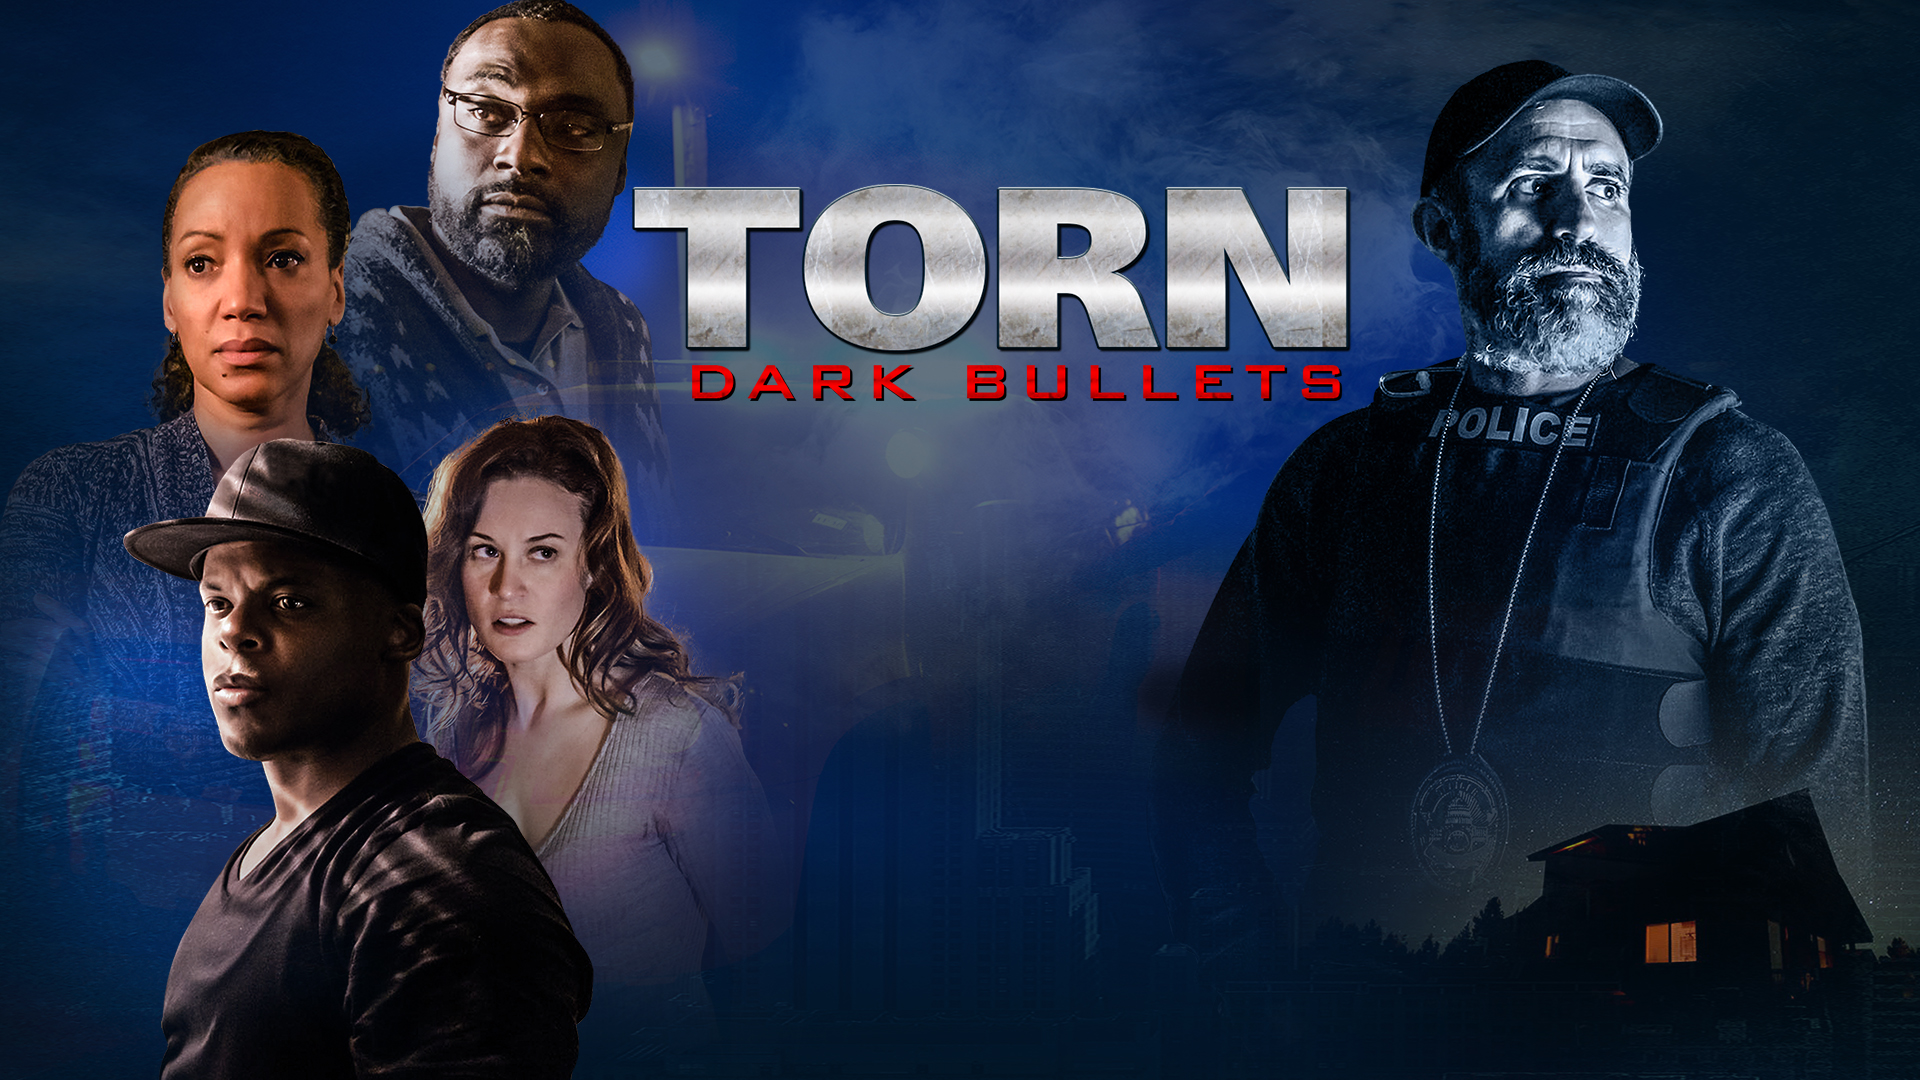 Torn - Dark Bullets